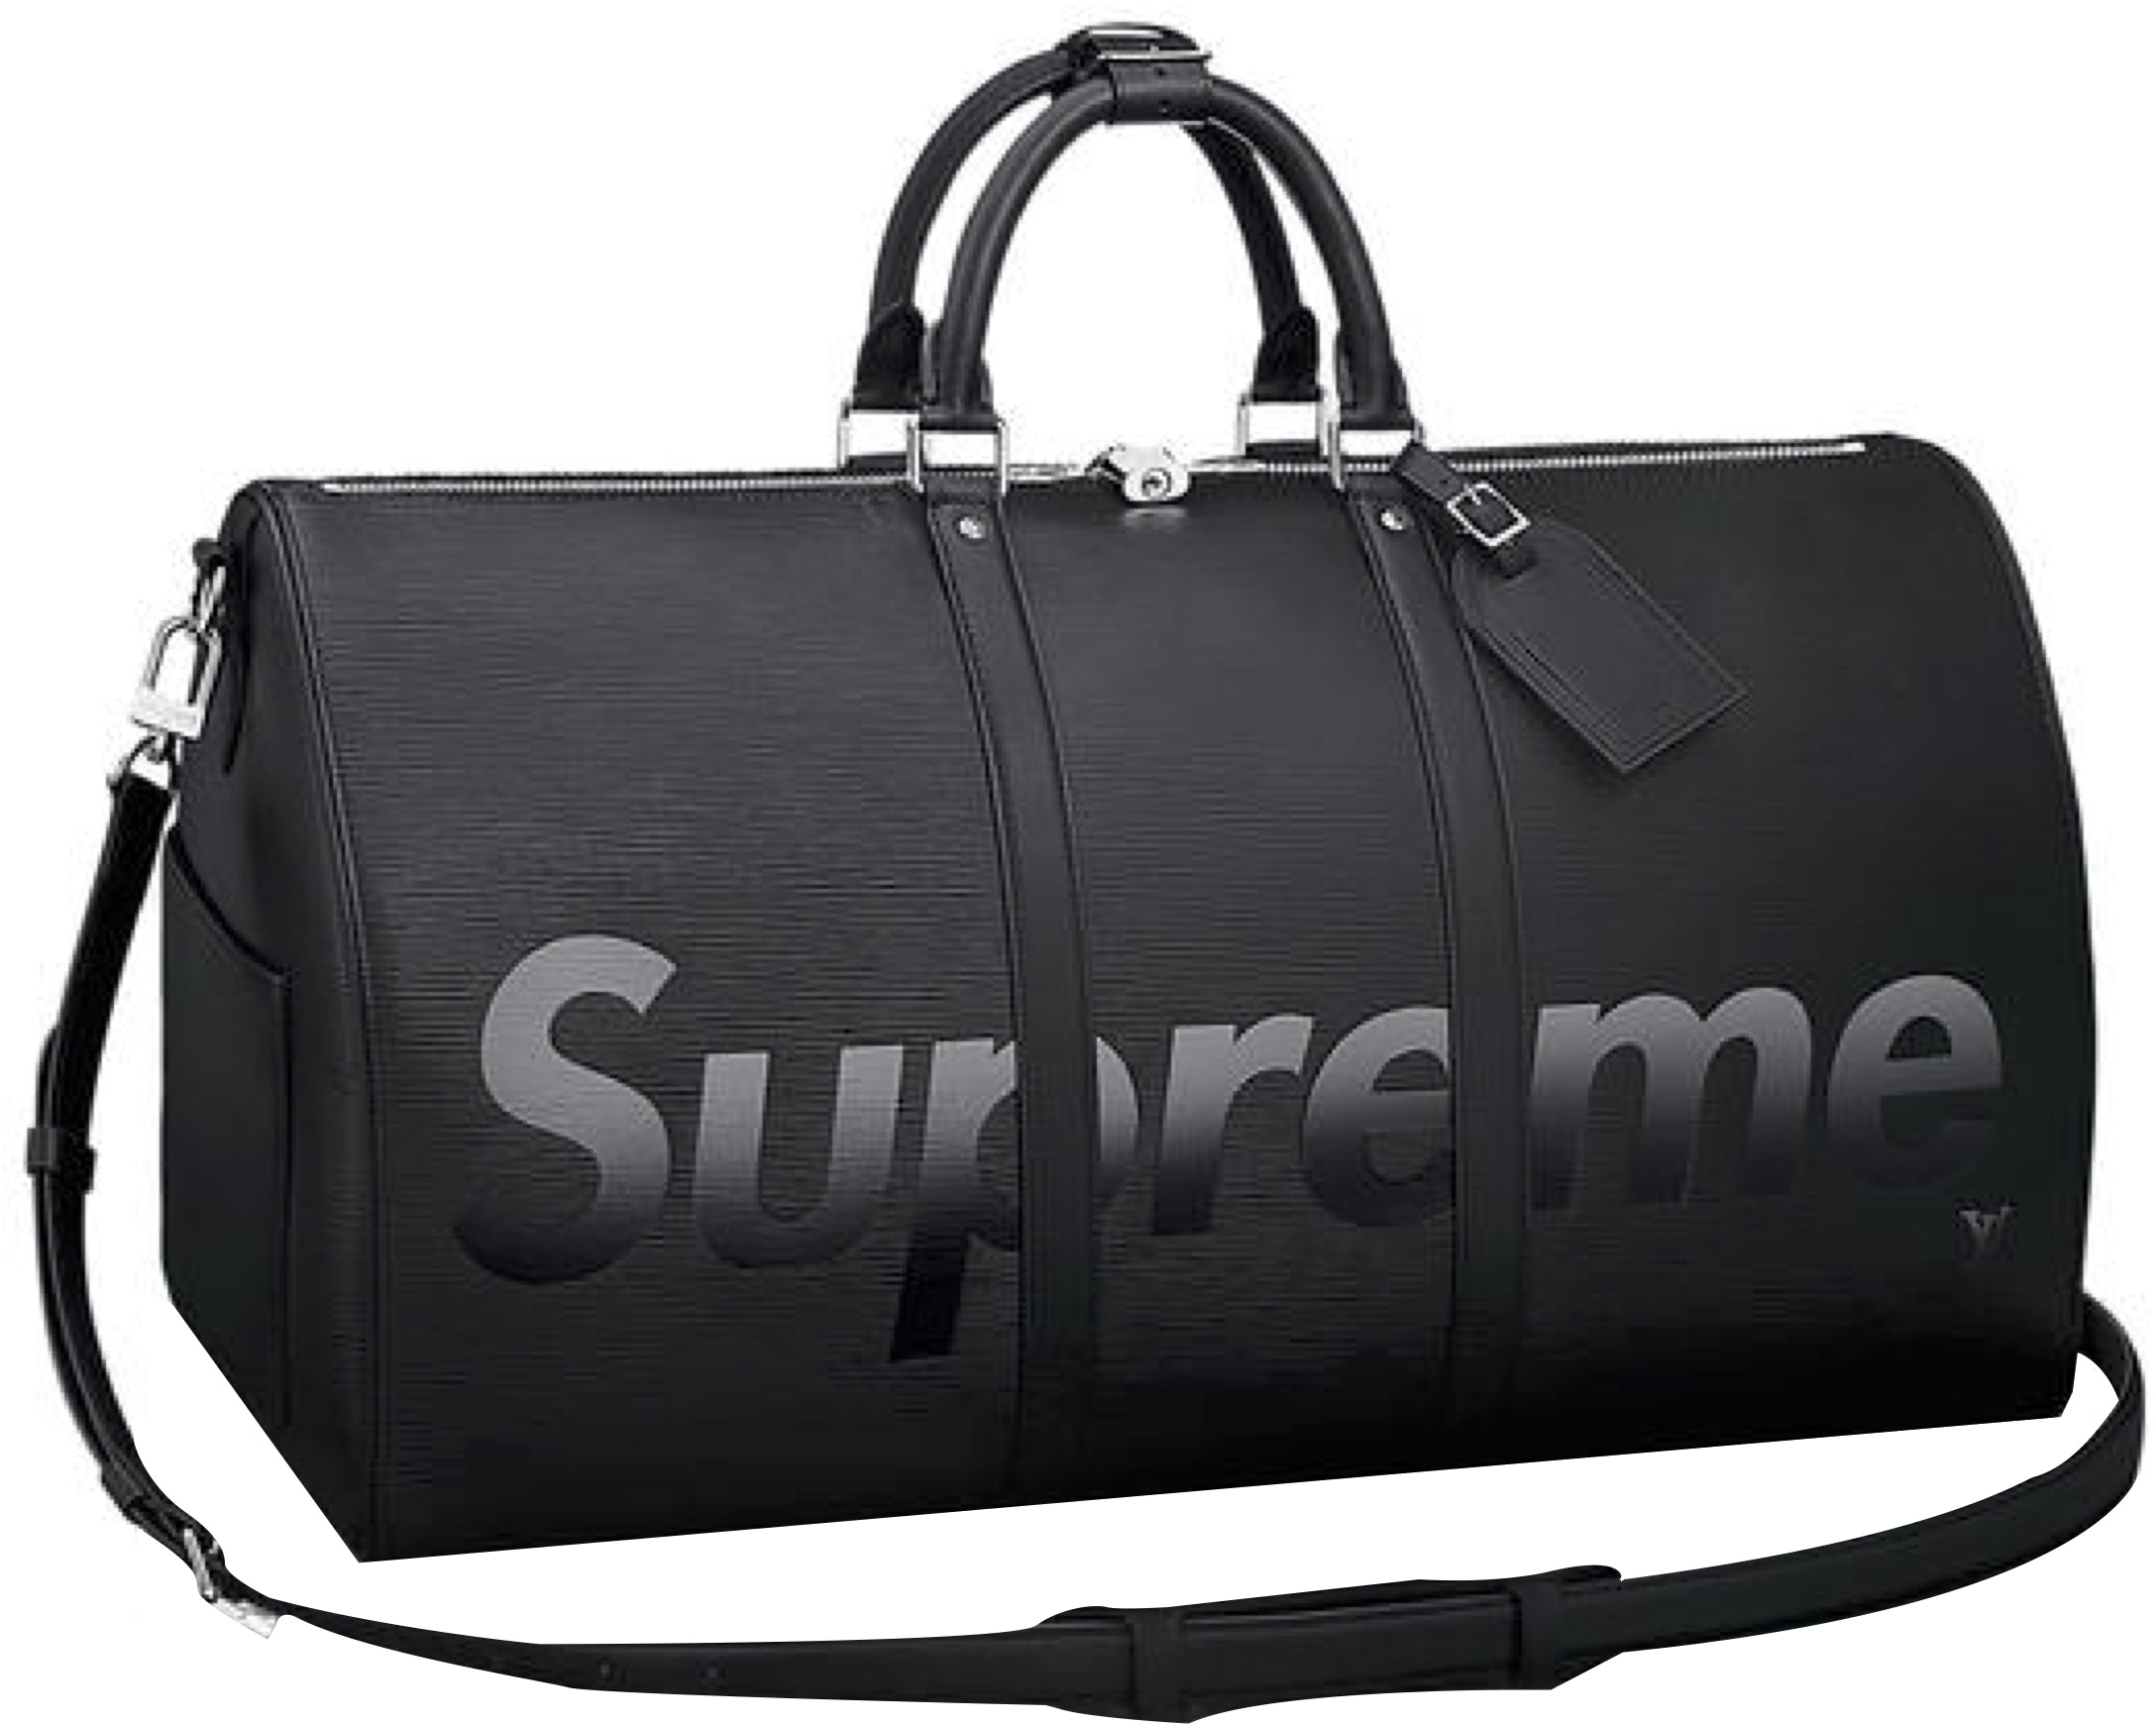 Louis Vuitton x Supreme Keepall Bandouliere Epi 55 Black